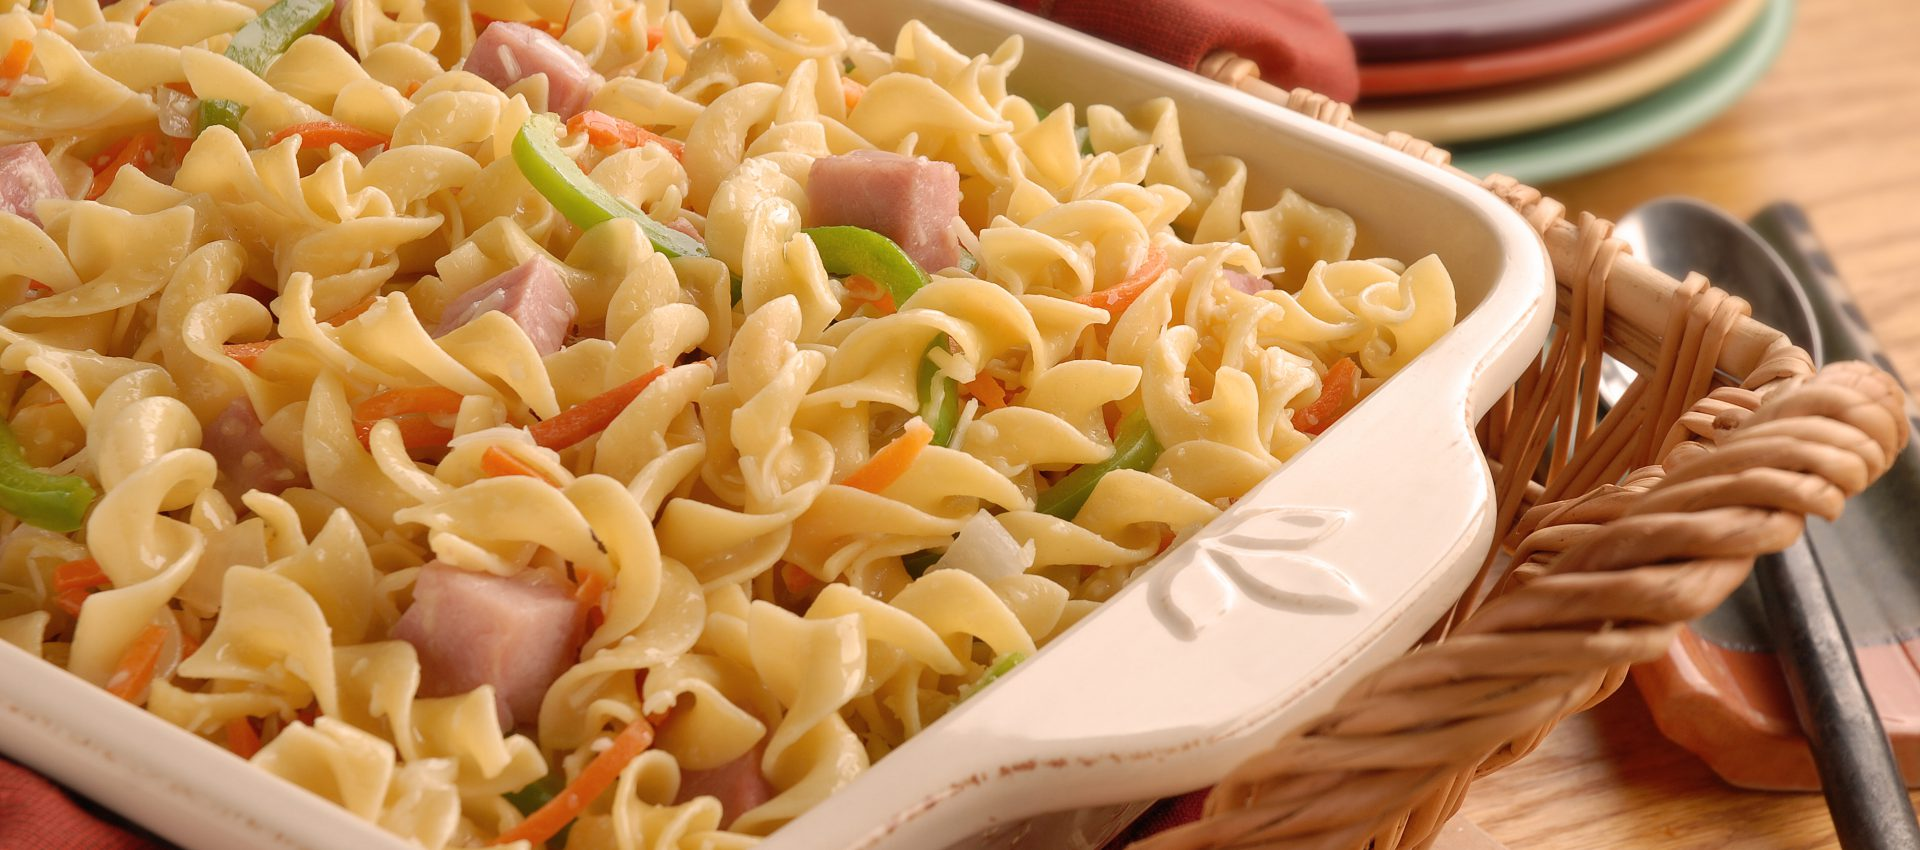 Country-Style-Ham-Noodles-1920x850 Country-Style Ham and Noodles